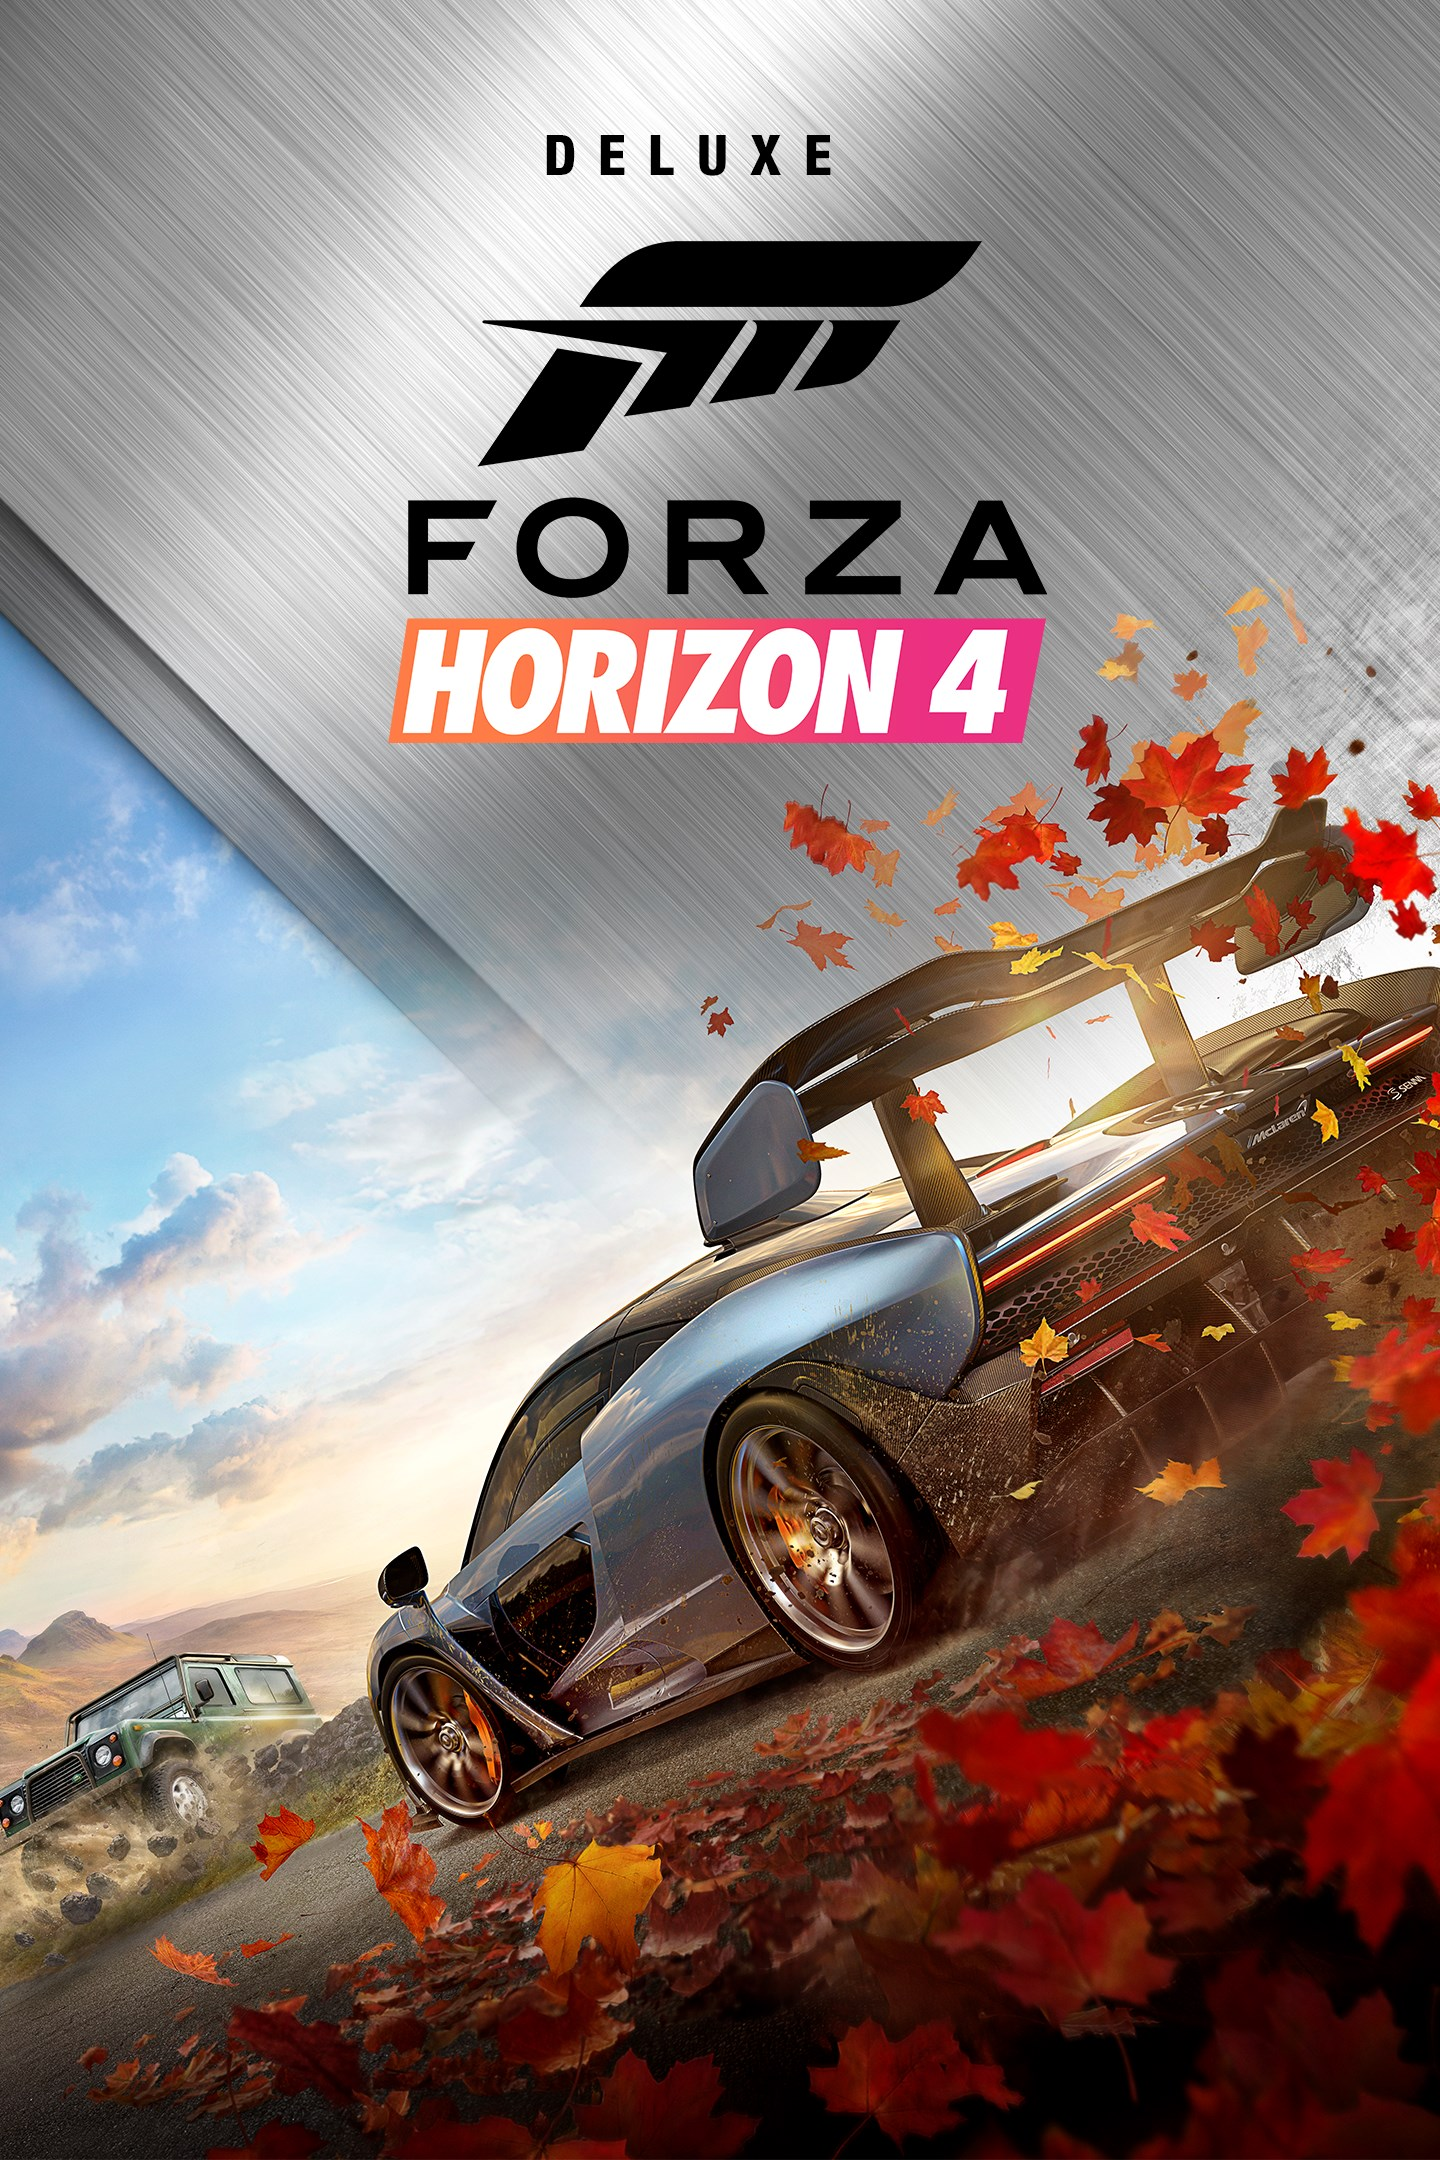 Forza Horizon 4 Deluxe Edition box shot